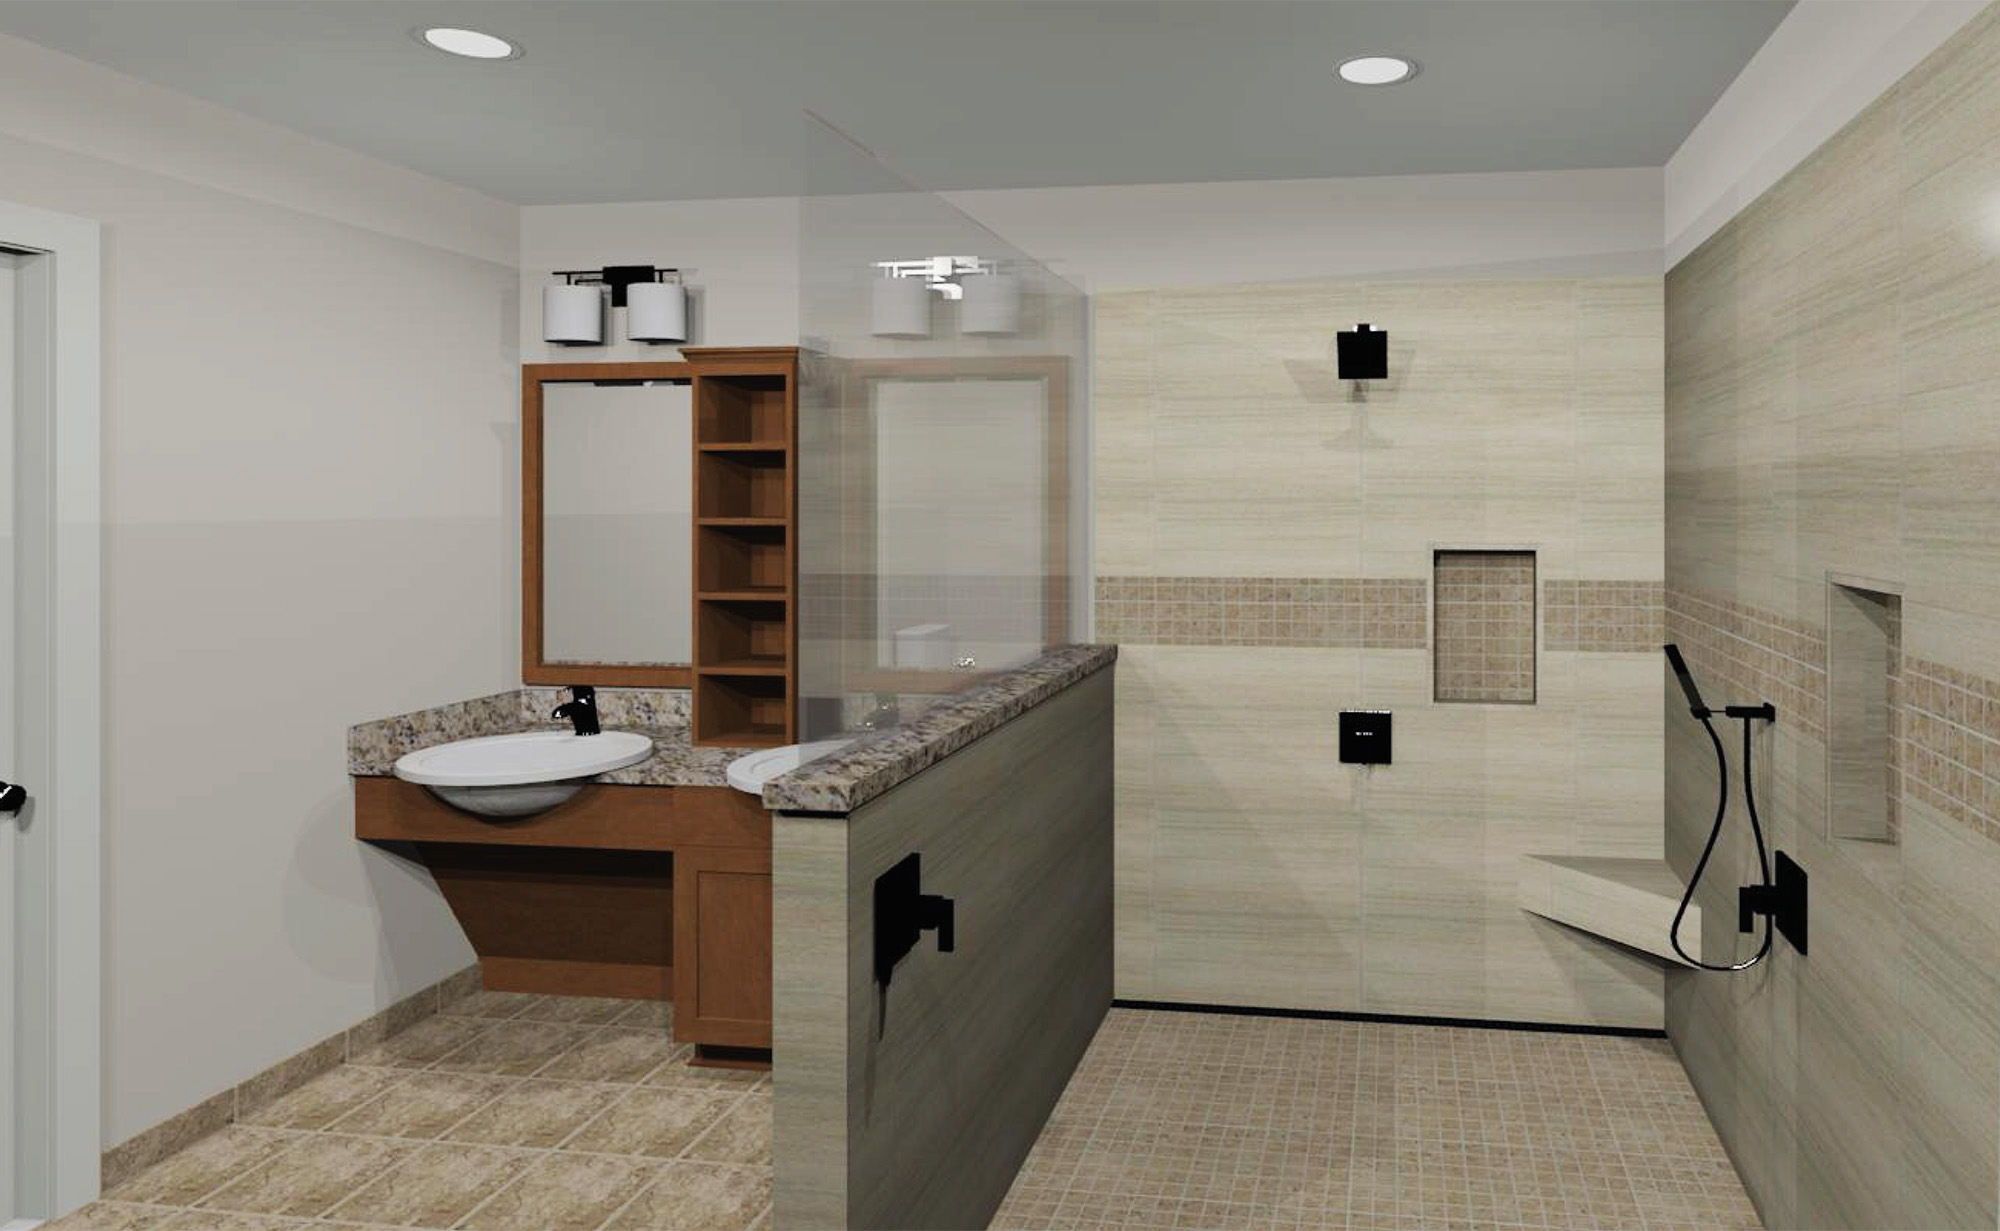 3D Rendering - Accessible Bathroom